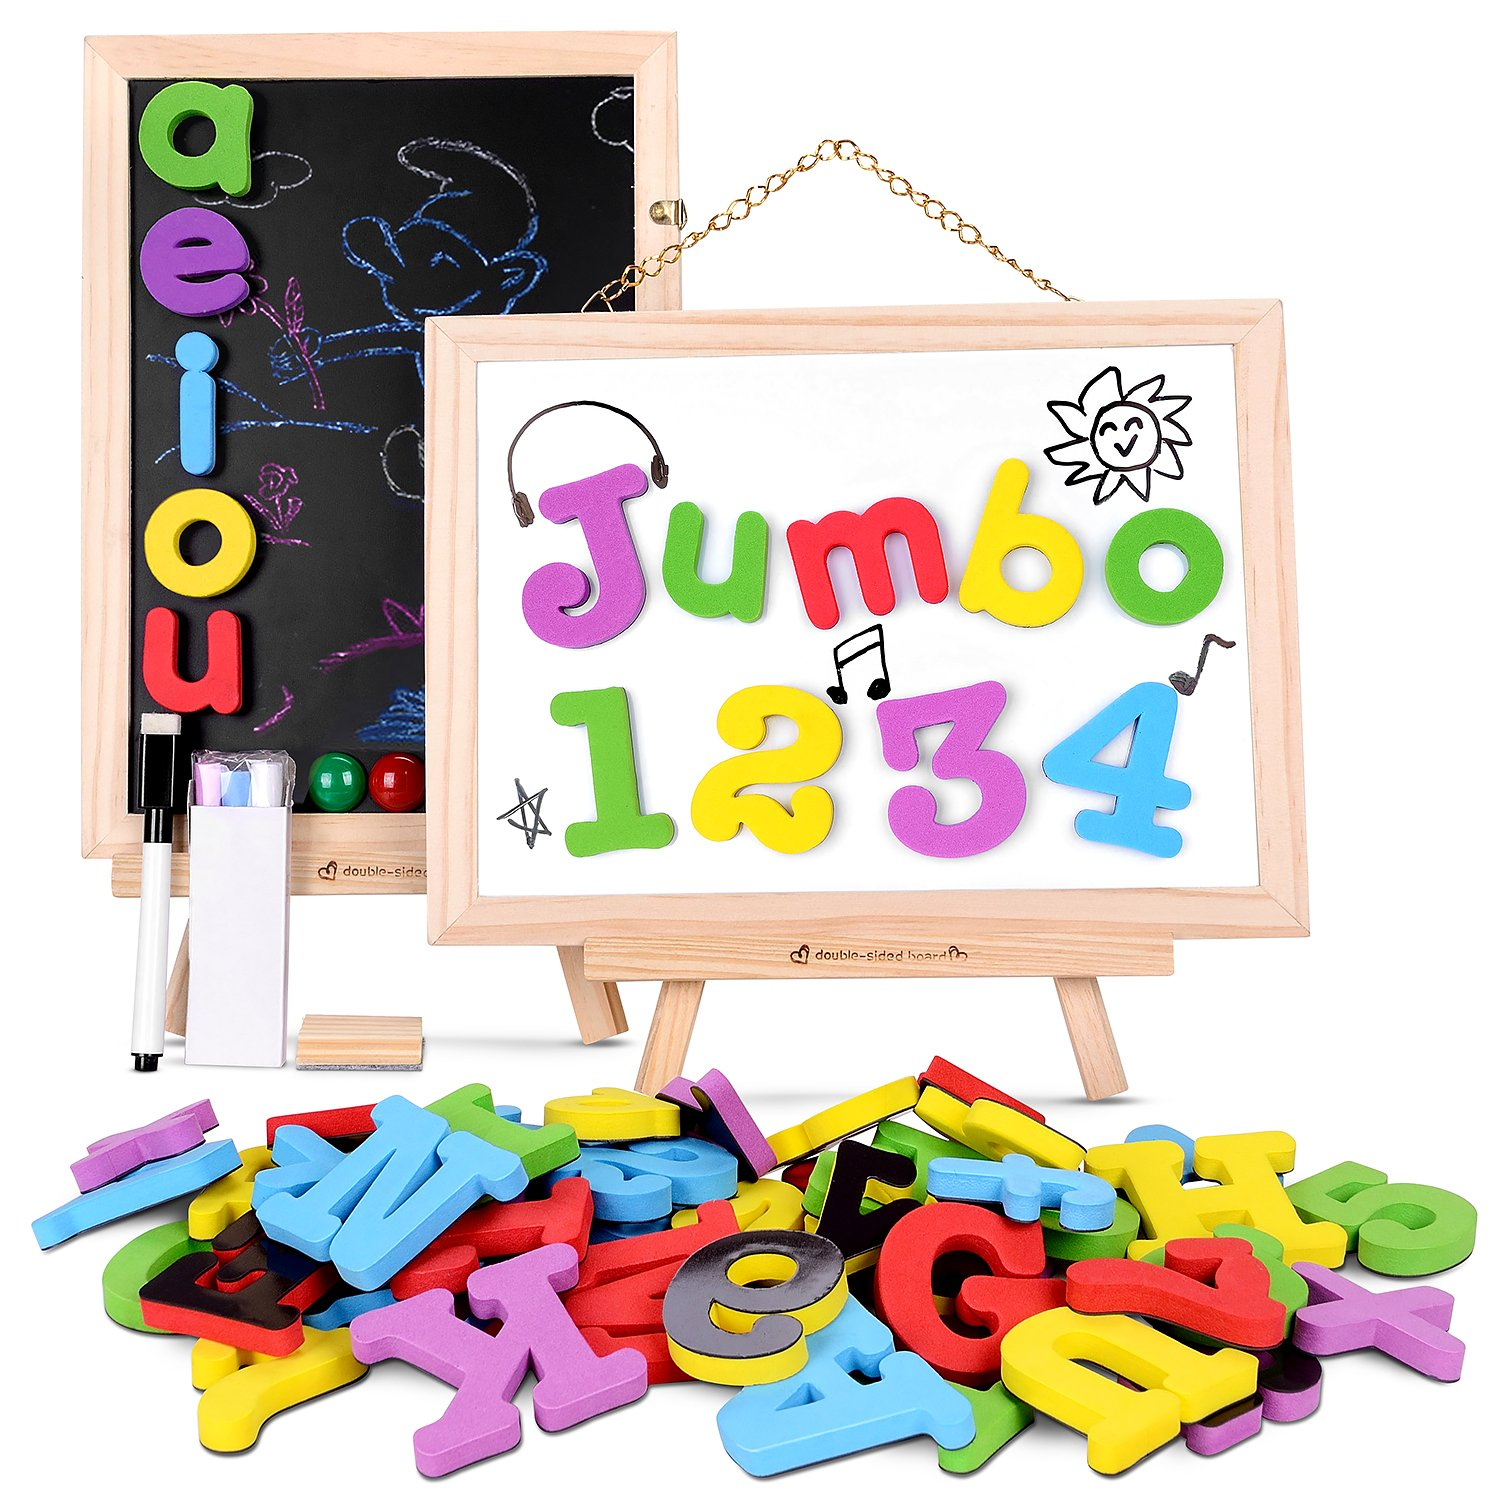 JOYNOTE Magnetic Letters and Numbers Jumbo Thick Double Sided Wooden Board,Educational Fridge ABC Magnets Alphabet for Kids Learning,Spelling and Drawing (119 Pieces and Storage Bag Included)